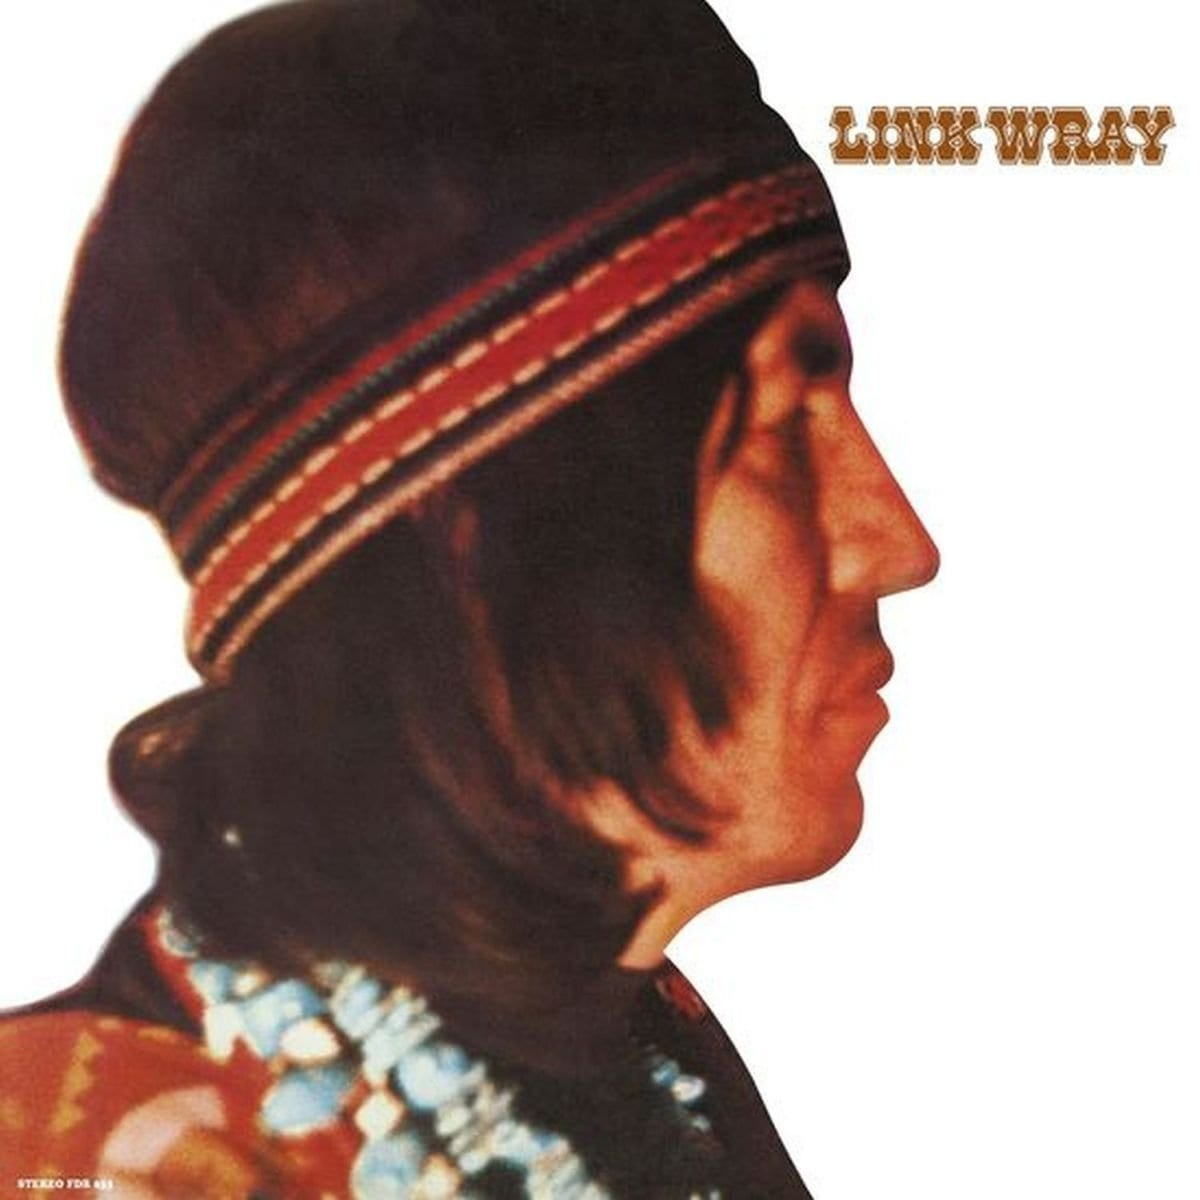 Link Wray - Link Wray [LP] (gatefold) - Urban Vinyl | Records, Headphones, and more.